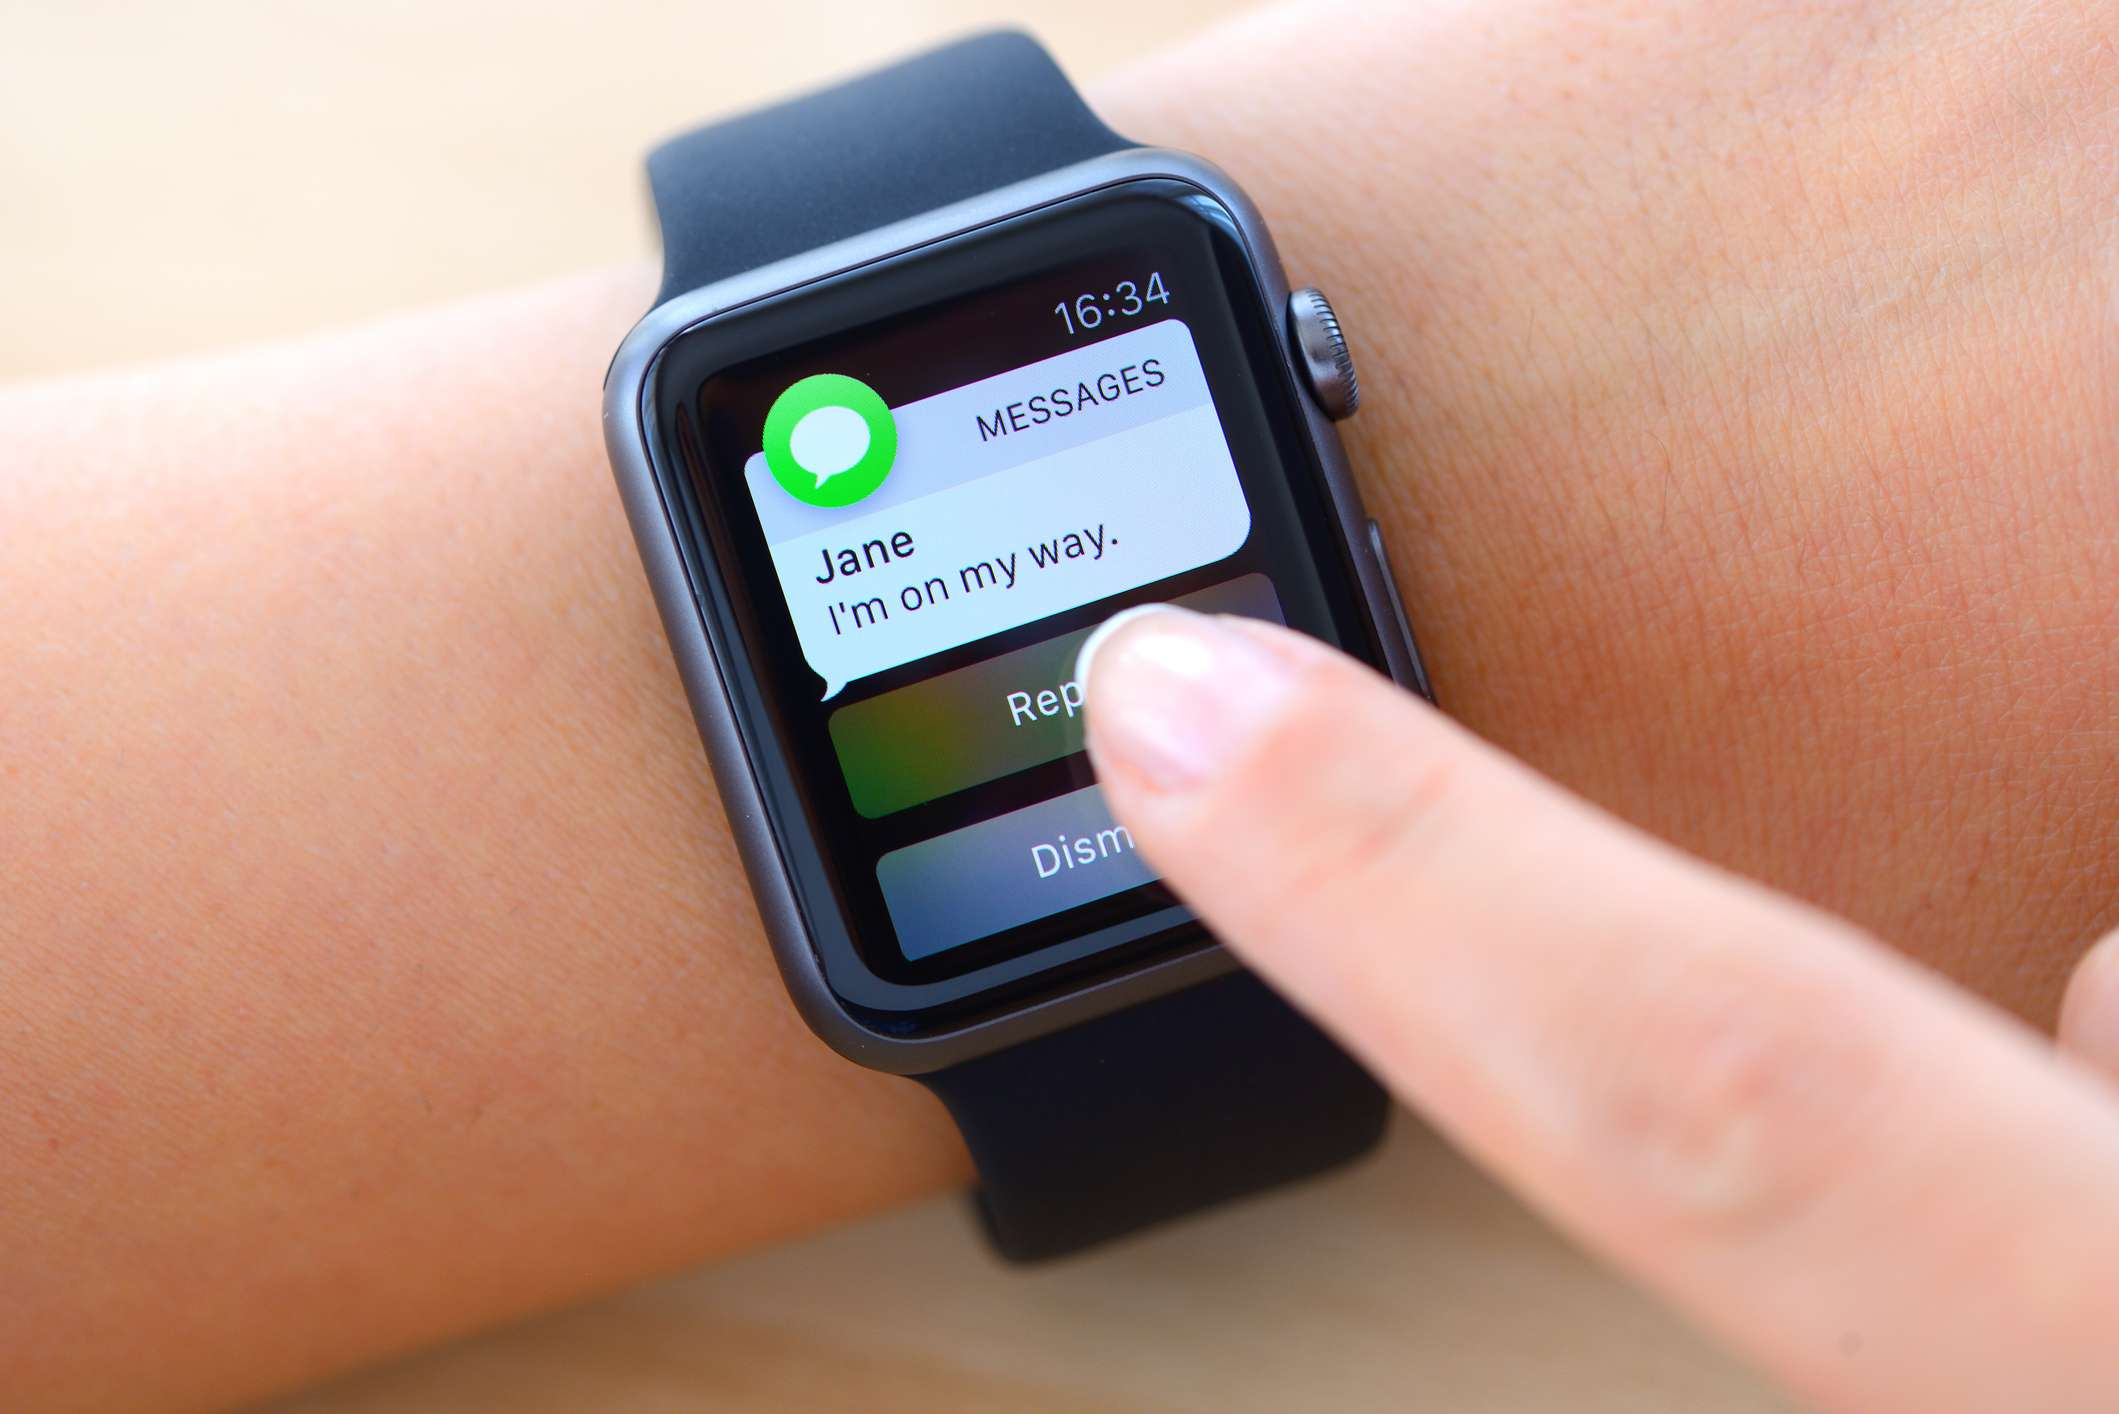 Text messages on Apple Watch before enabling Notification Privacy